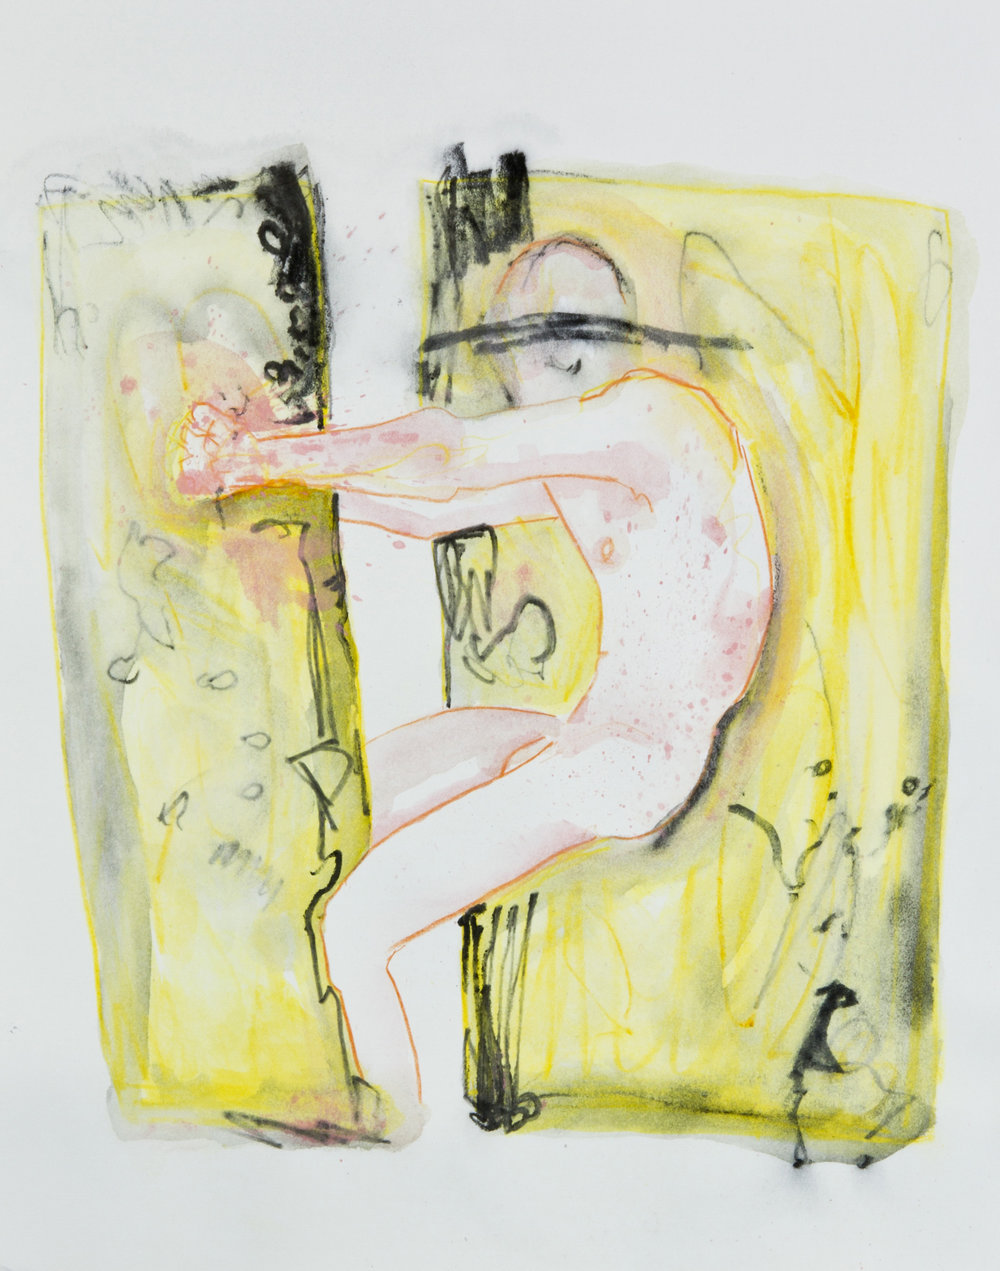 Two Yellow Pools, 2013, graphite, crayon and watercolor pencil on paper, 11x14 inches